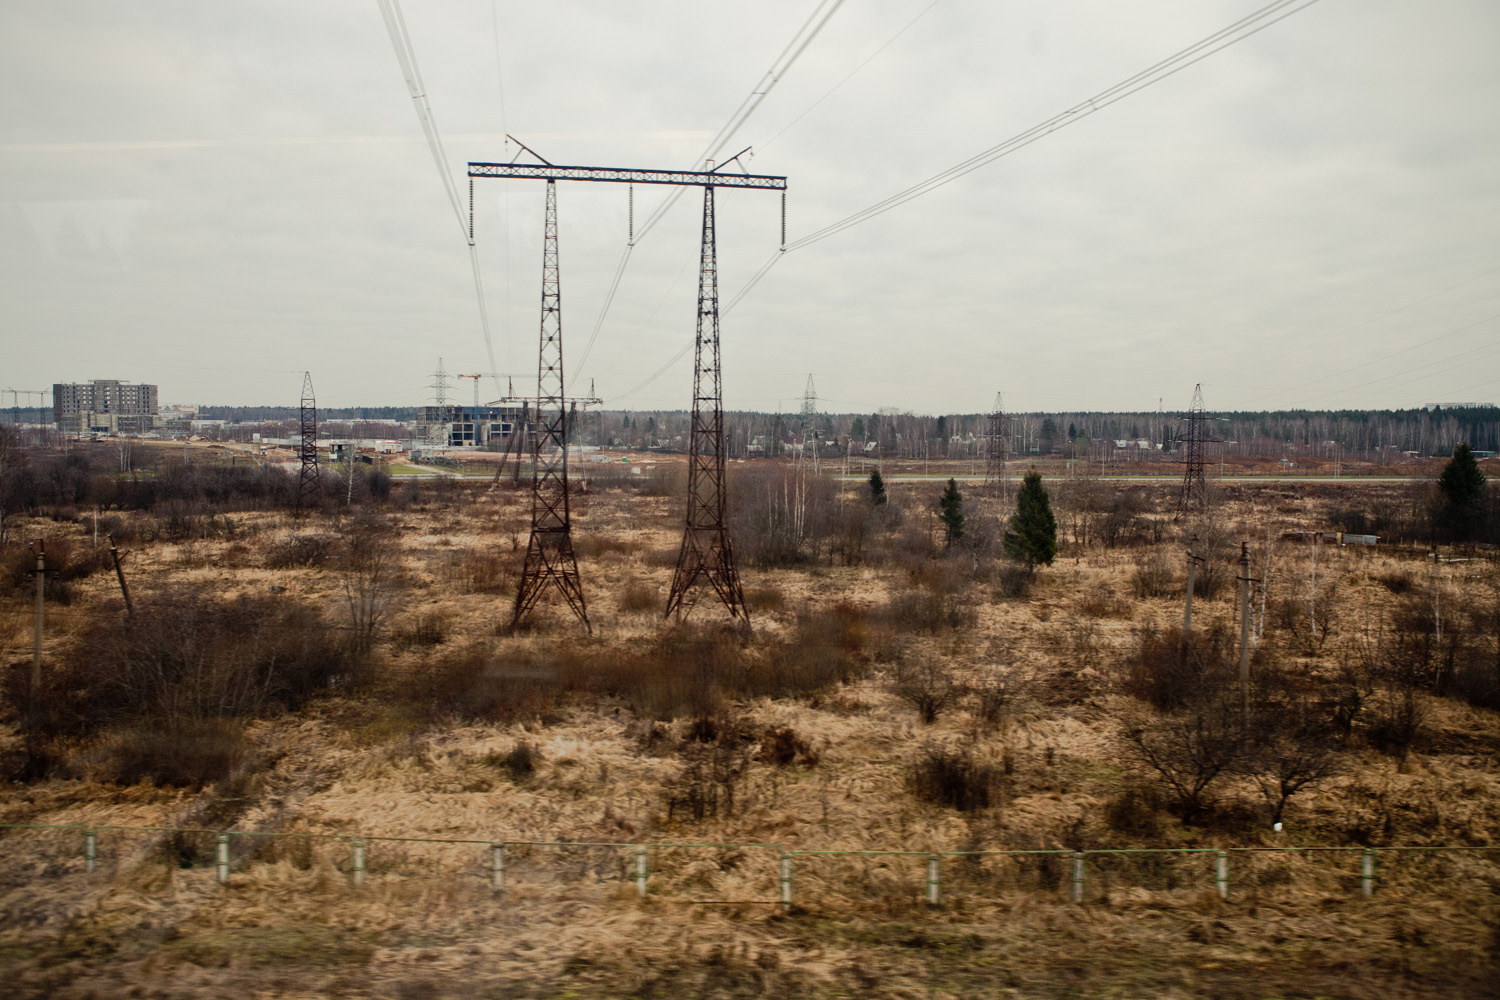 moscow-to-st-petersburg_8224464007_o.jpg